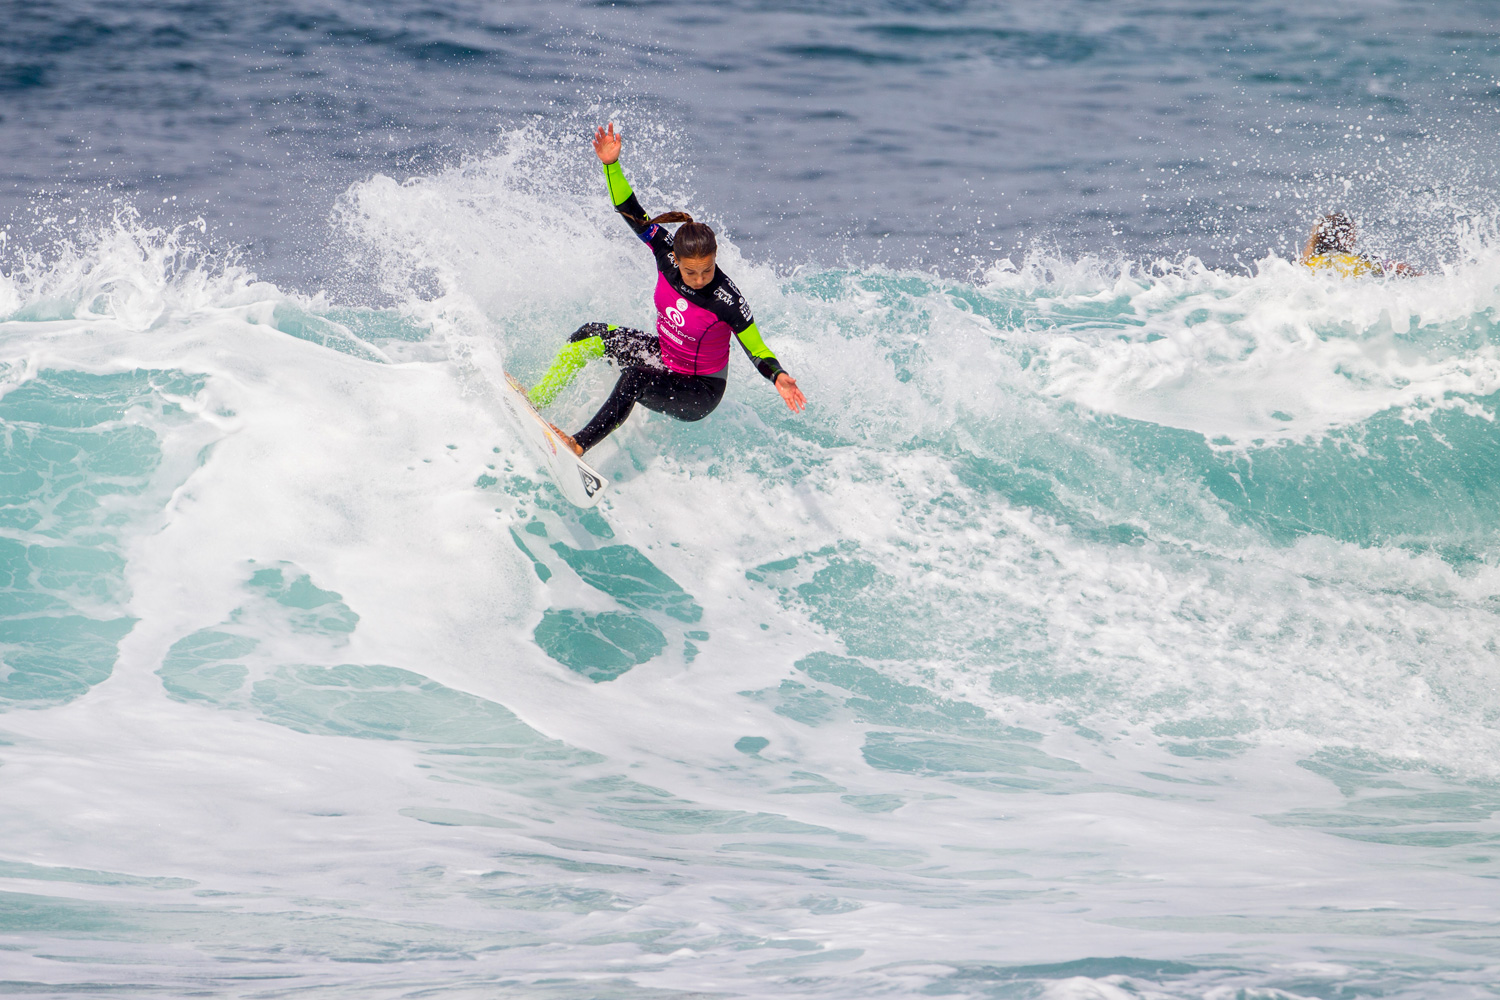 Sally Fitzgibbons surfs to victory in the second heat of Round 1 of the Rip Curl Pro Bells Beach with a mark of 12.94.